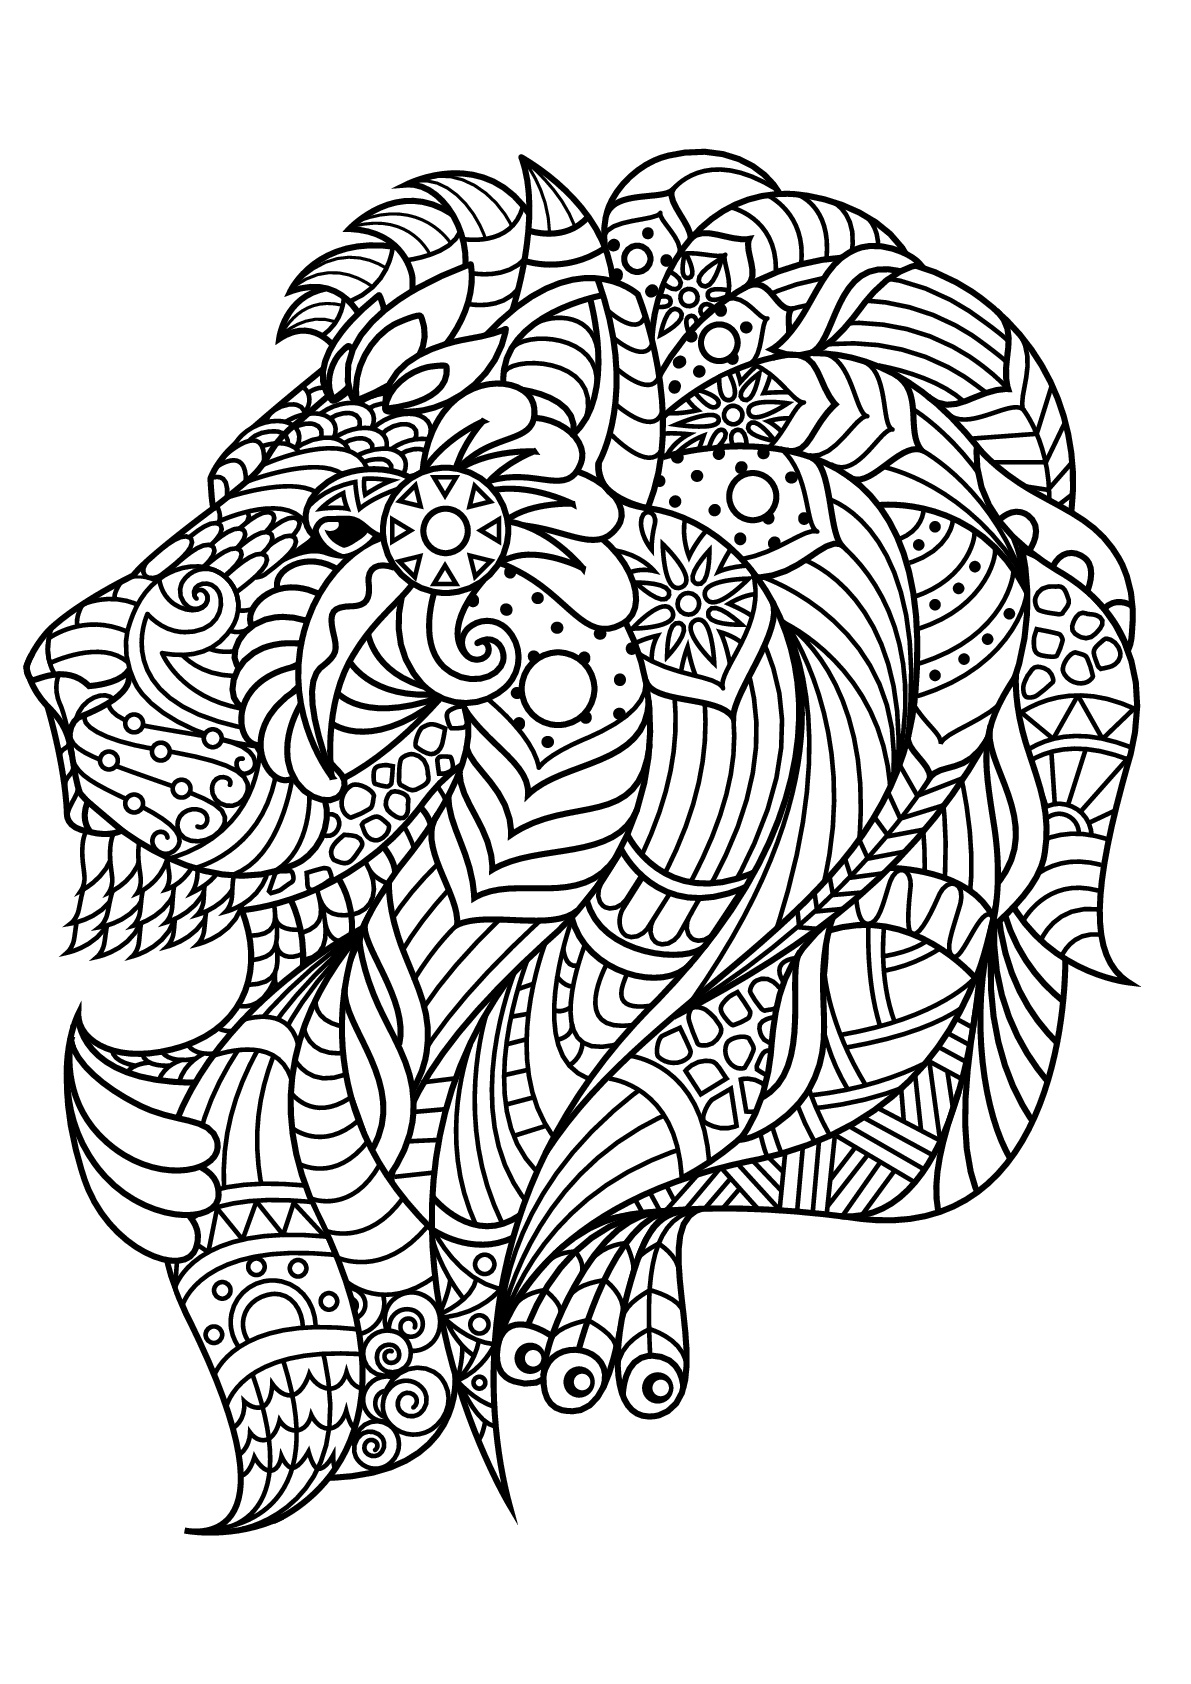 lion coloring pages 63 adult coloring pages to nourish your mental visual pages lion coloring